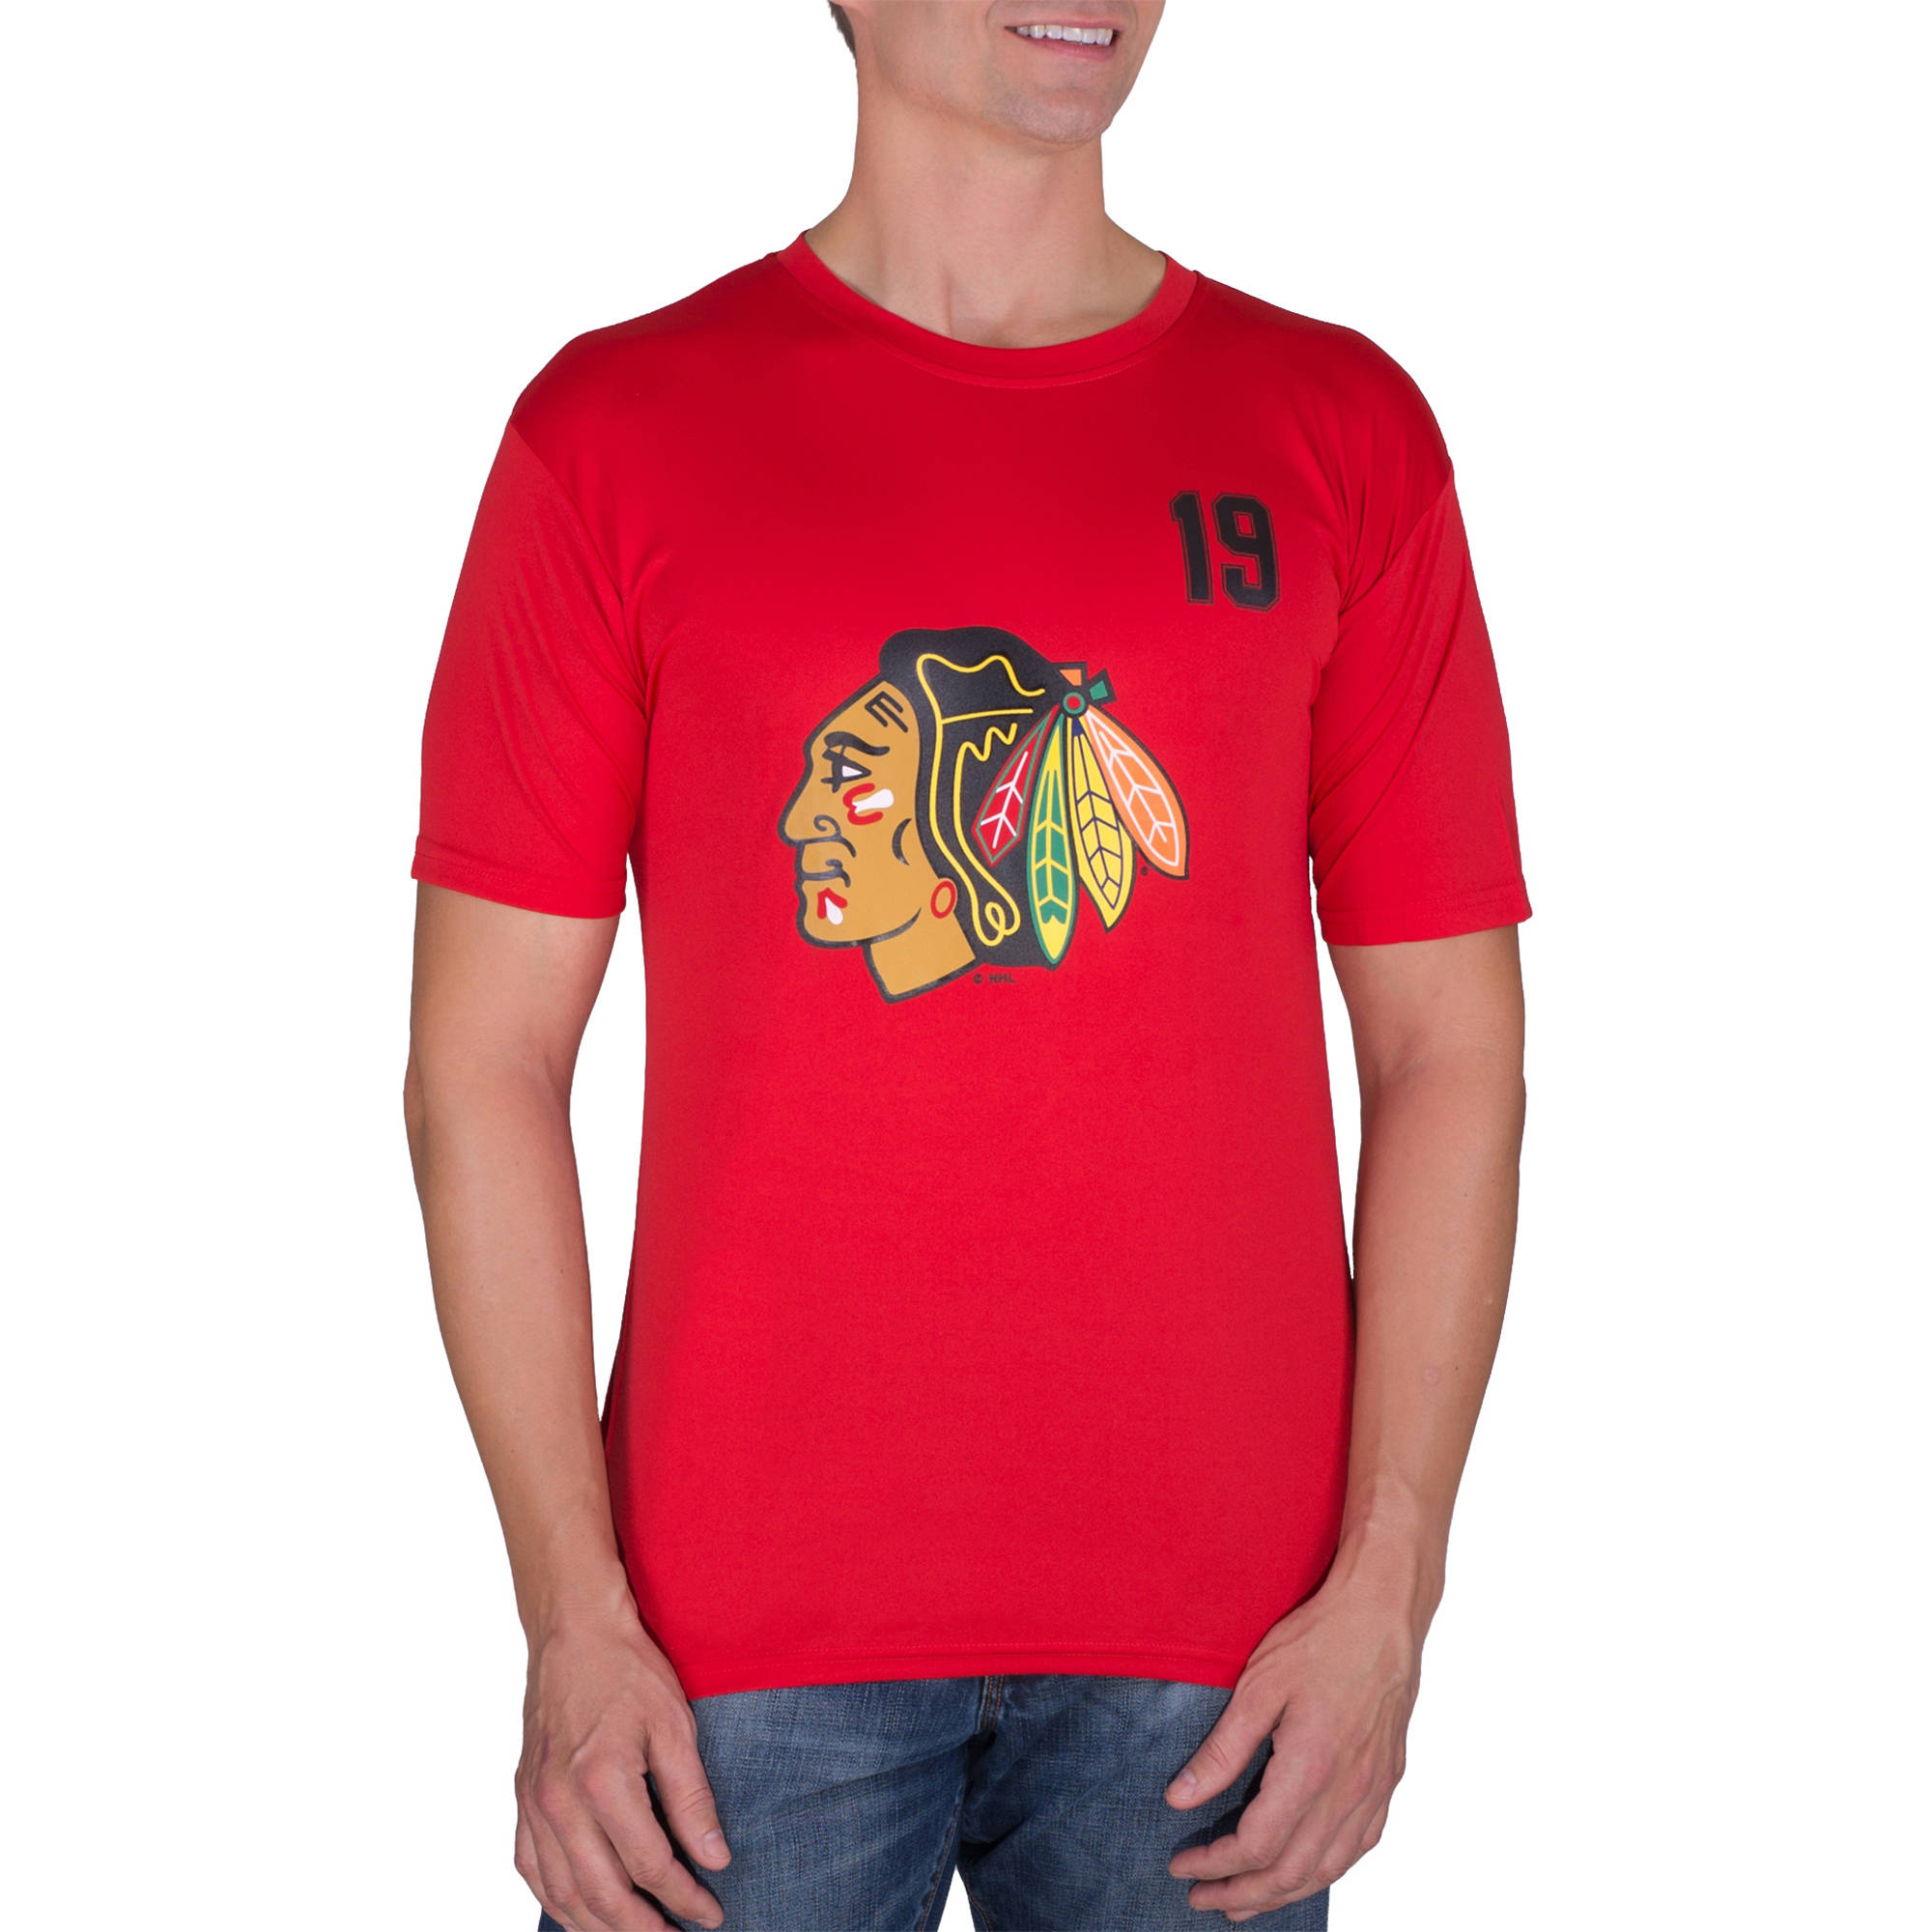 NHL Chicago Blackhawks Jonathan Toews 19 Men's Athletic-Fit Impact Tee Shirt